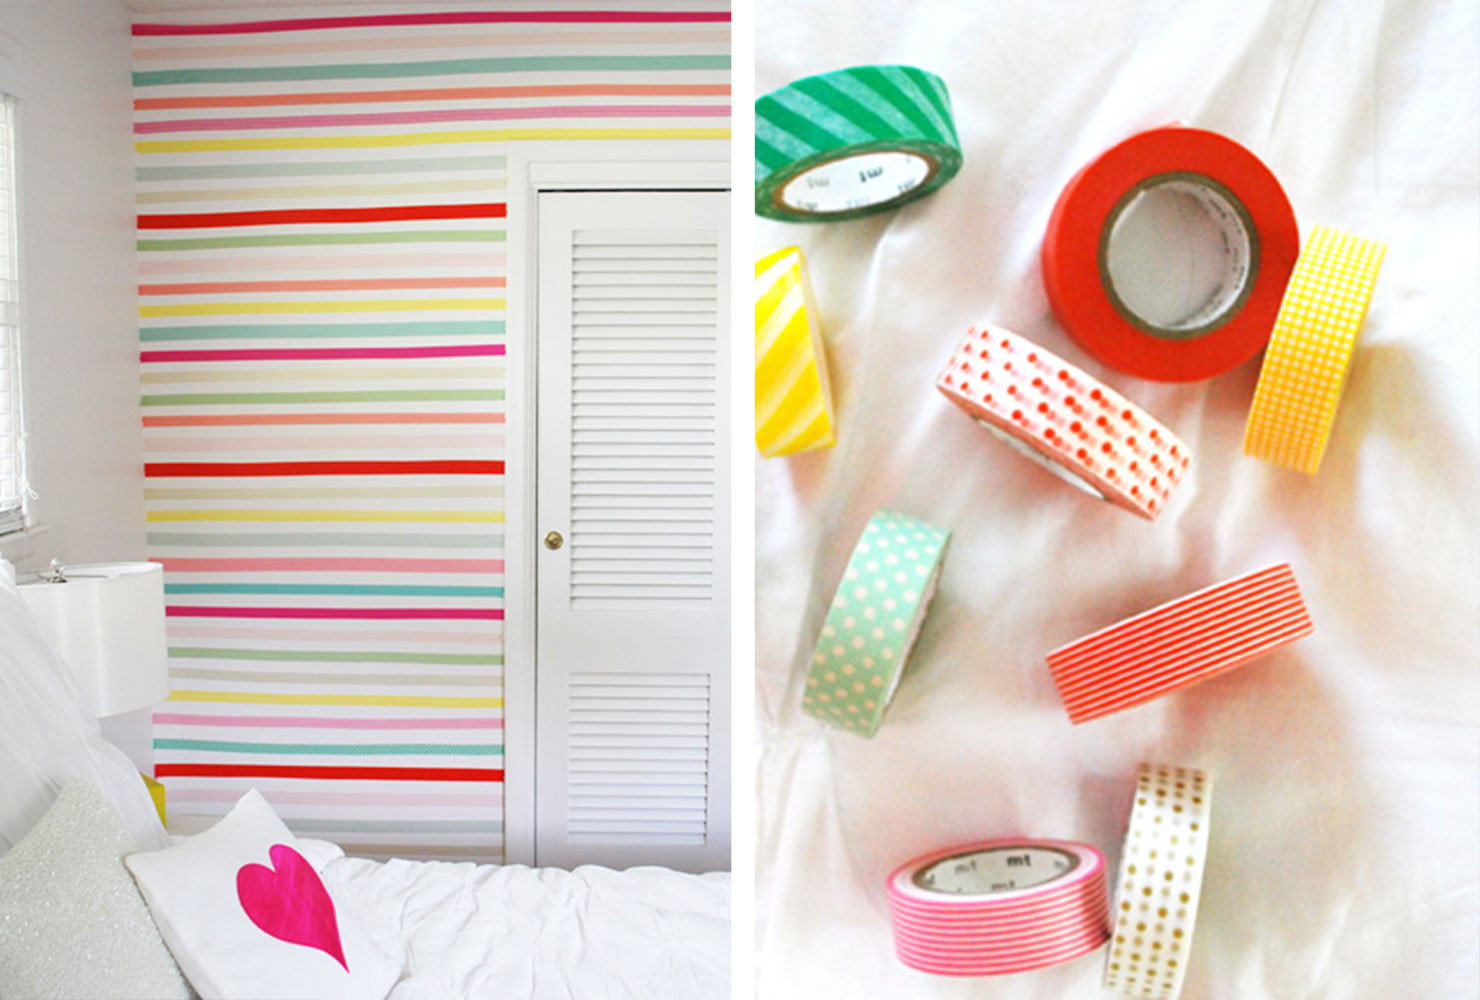 Best ideas about How To Decorate Your Room DIY . Save or Pin 55 DIY Room Decor Ideas to Decorate Your Home Now.